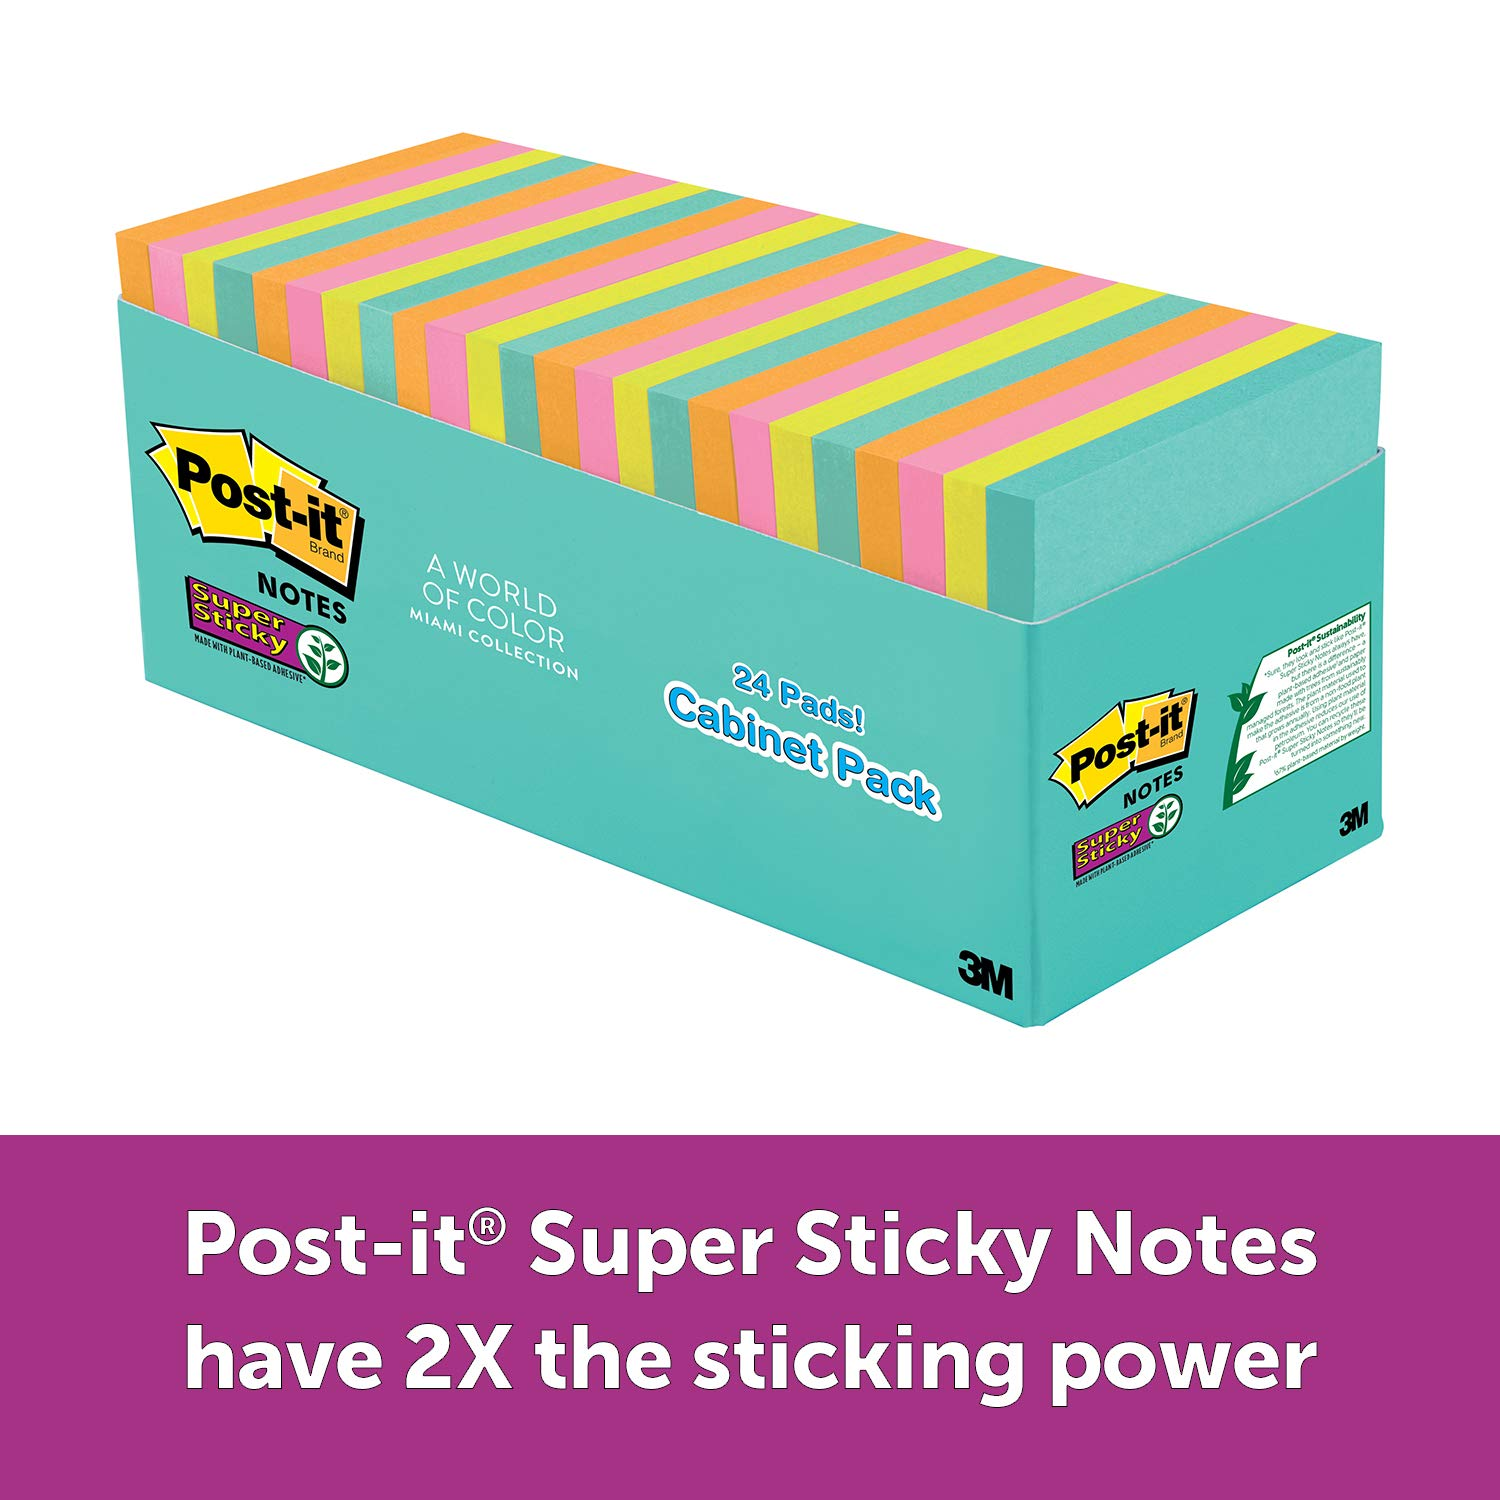 Post-it Super Sticky Notes, Miami Colors, Sticks and Resticks, Great for Reminders, Large Pack, 3 in. x 3 in, 24 Pads/Pack, 70 Sheets/Pad (654-24SSMIA-CP)